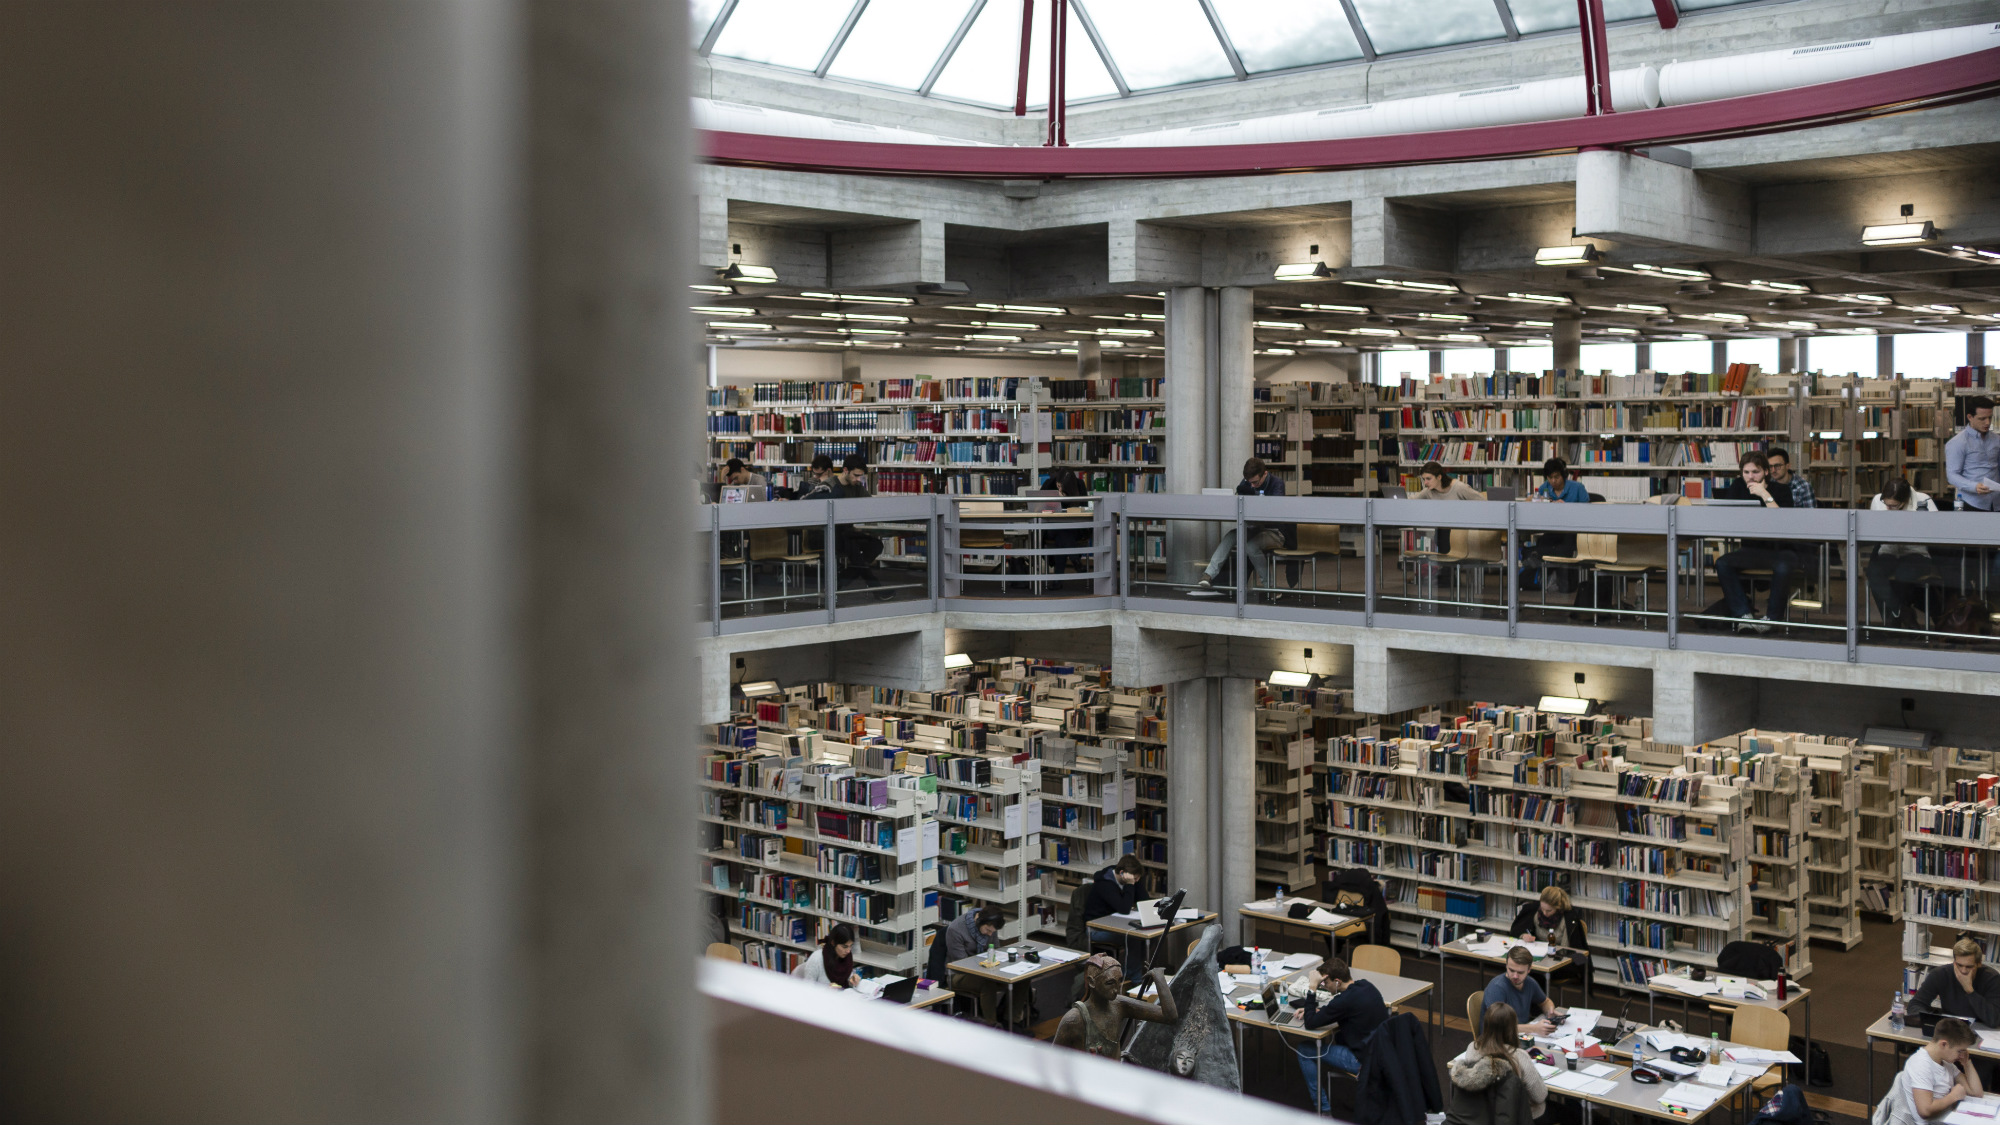 University of St.Gallen (HSG) library